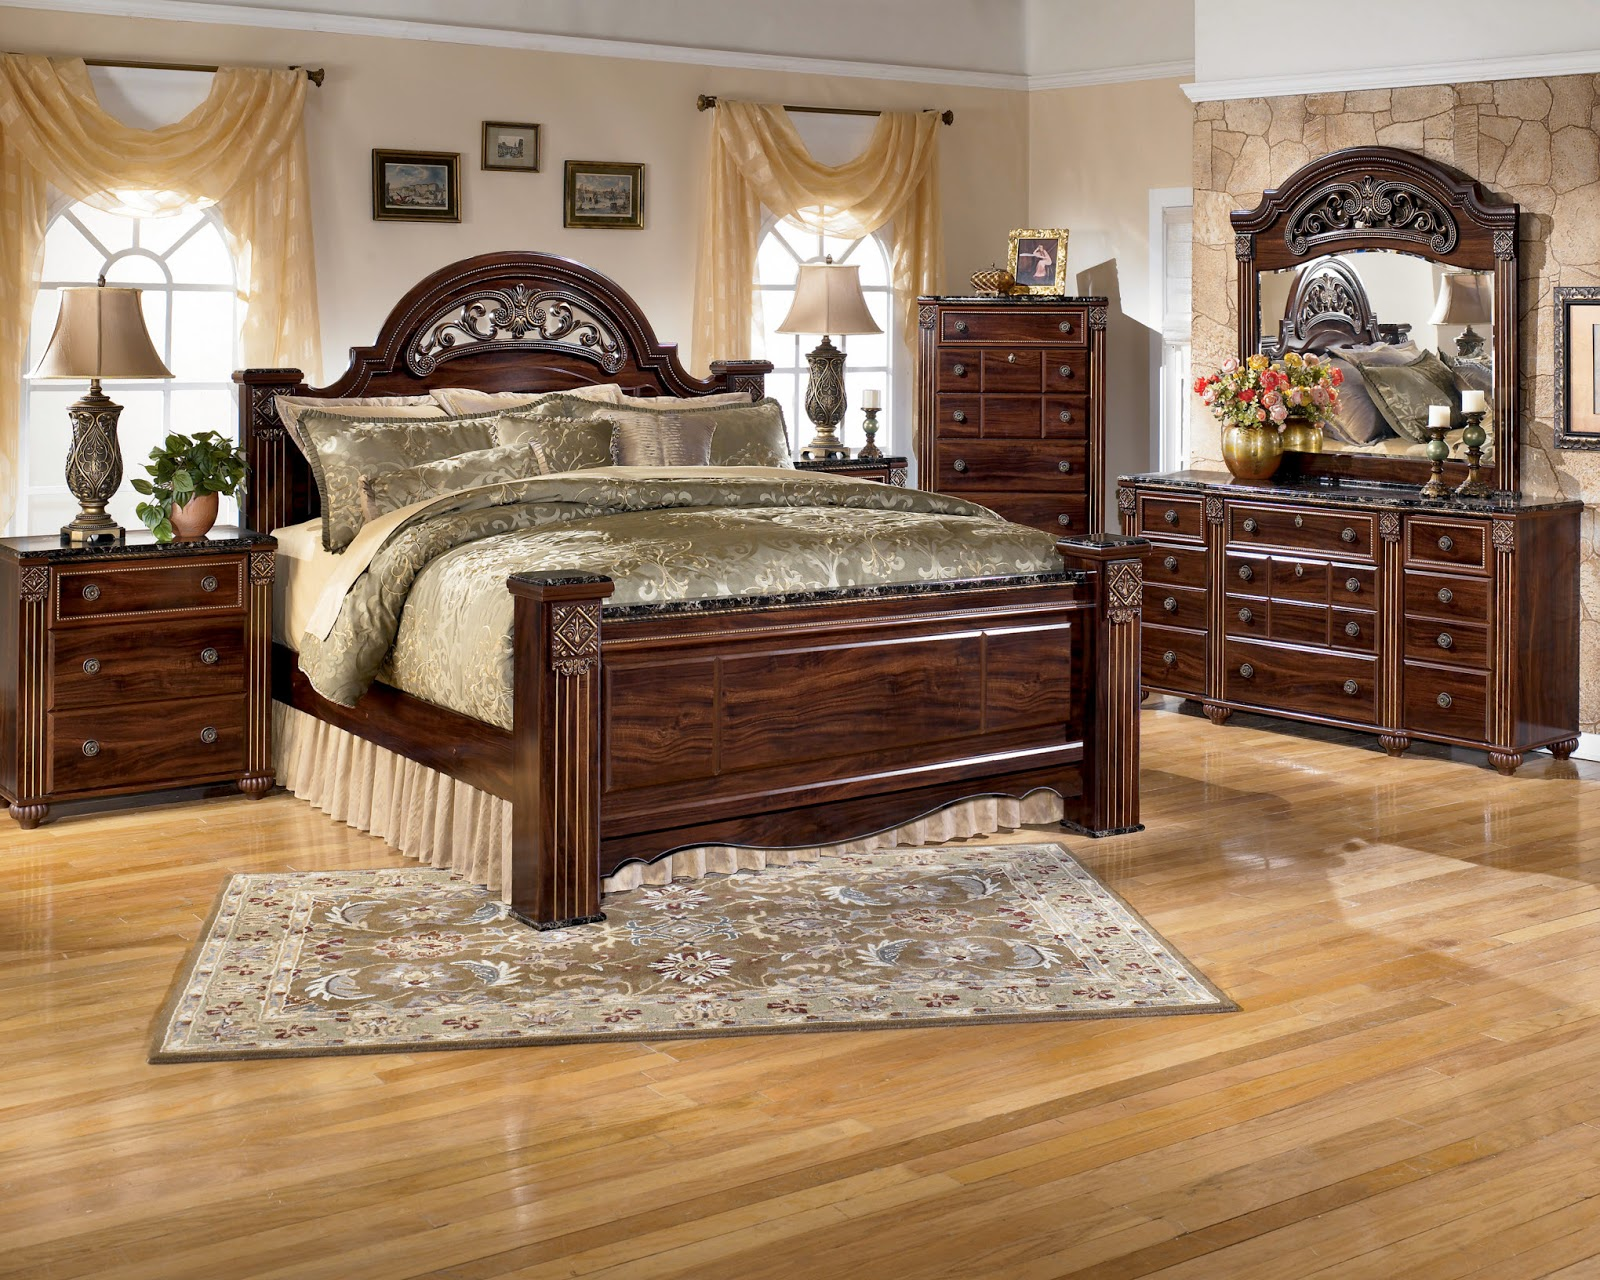 Ashley Furniture Bedroom Sets On Sale Popular Interior ...